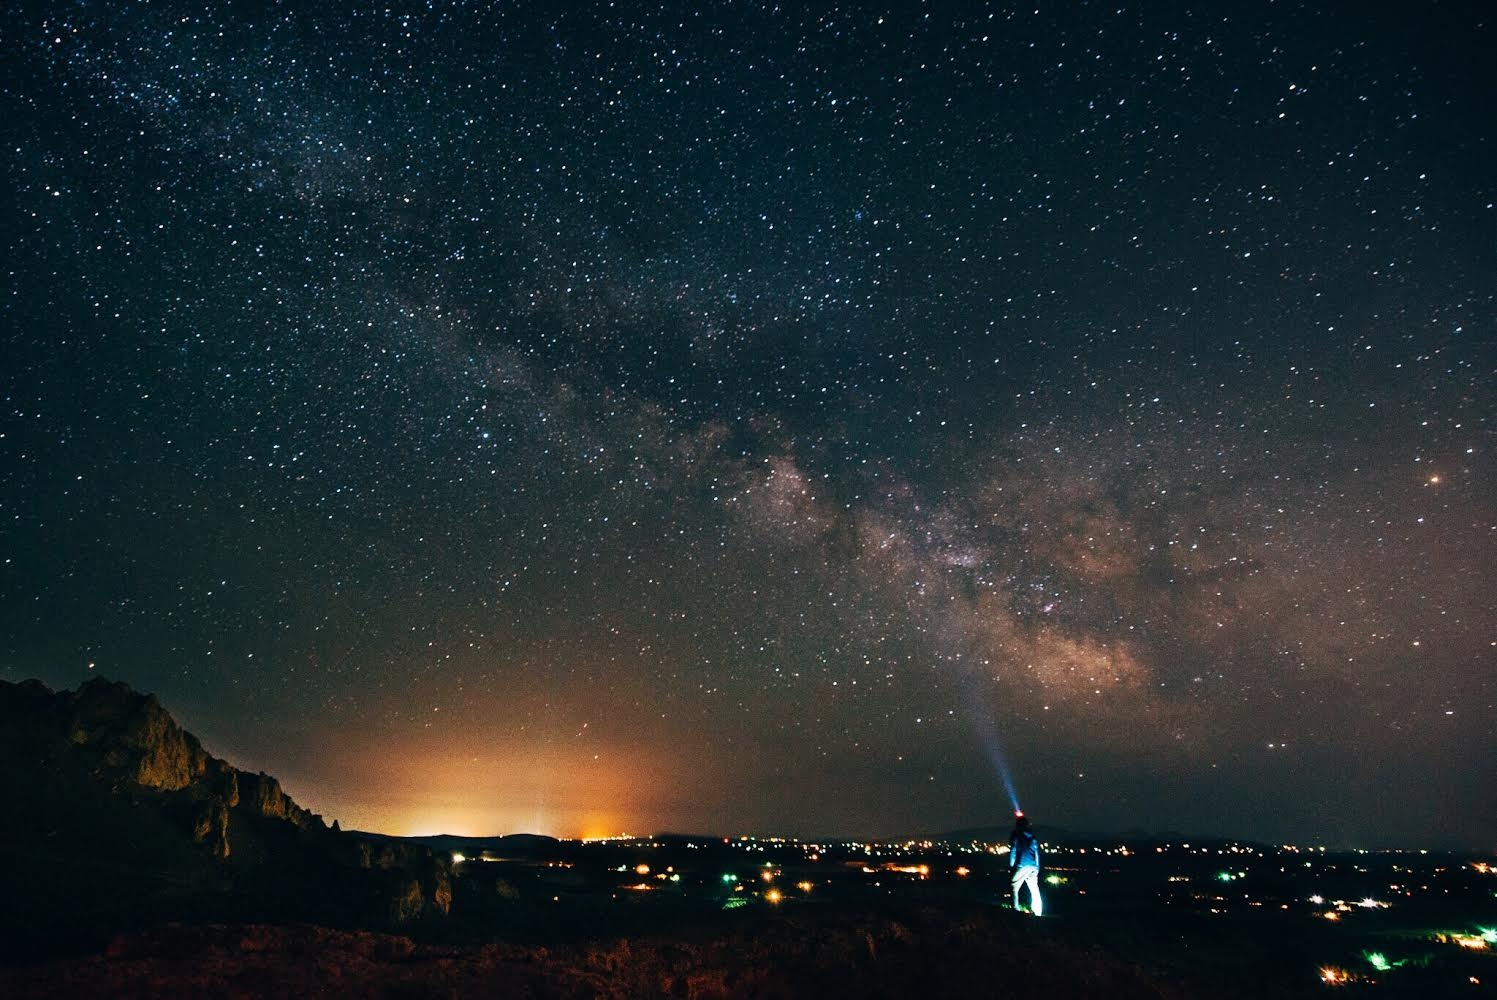 plan a night to stay awake and shoot the stars fstoppers milky way astrophotography stars